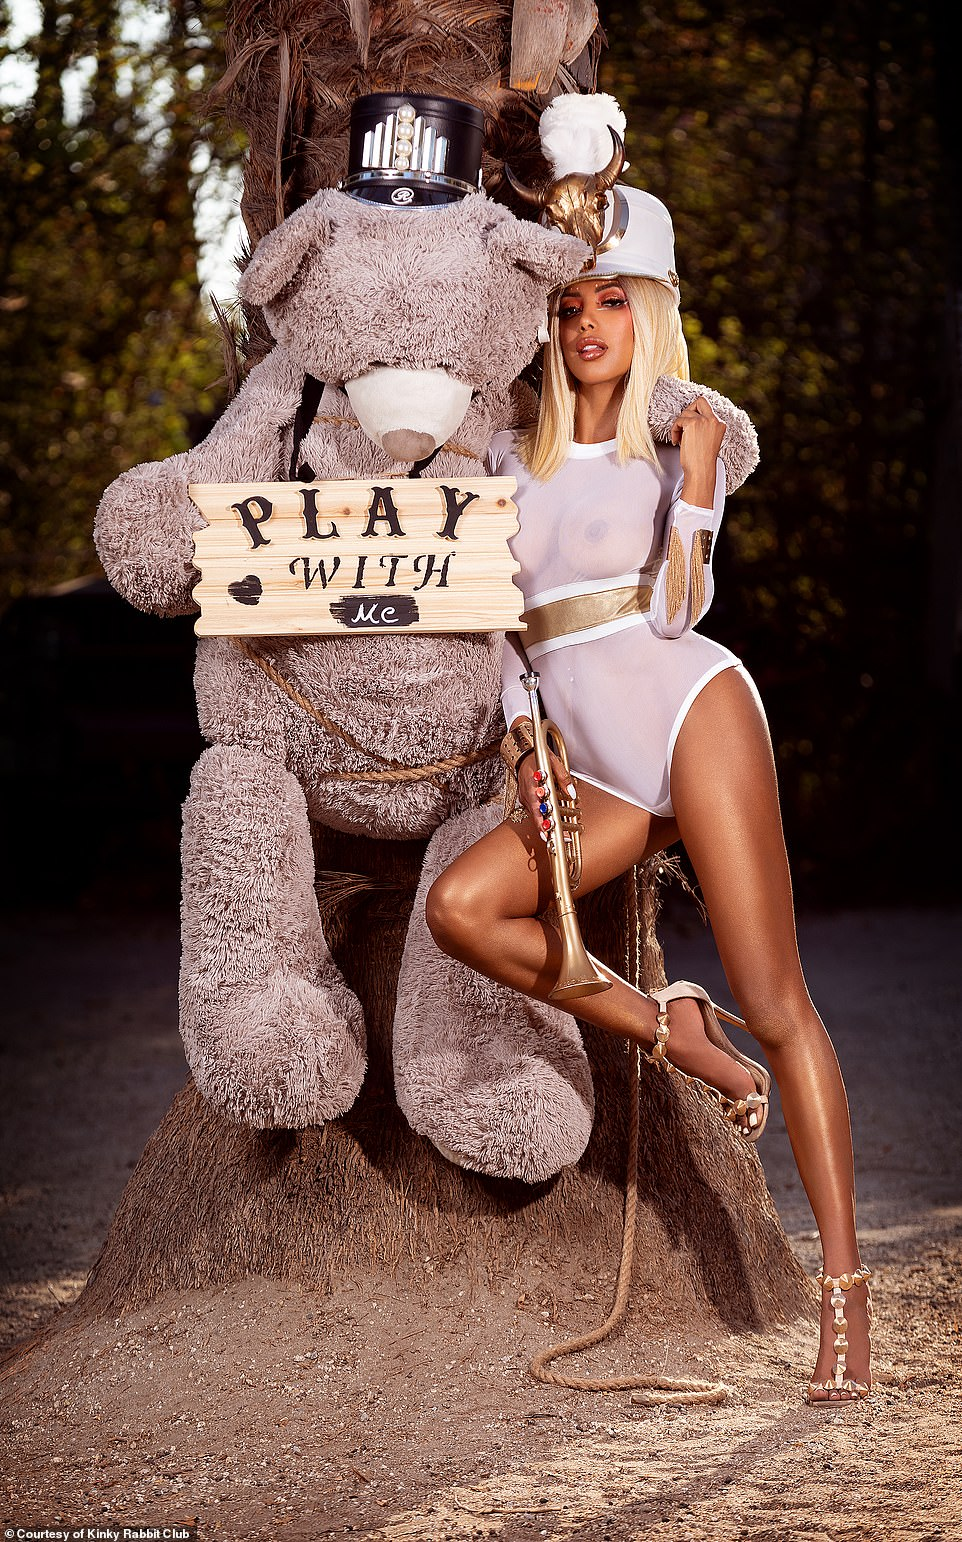 This tantalizing photo invites guests willing to pay up to $5,000 to come 'play' at one of the exclusive sex events